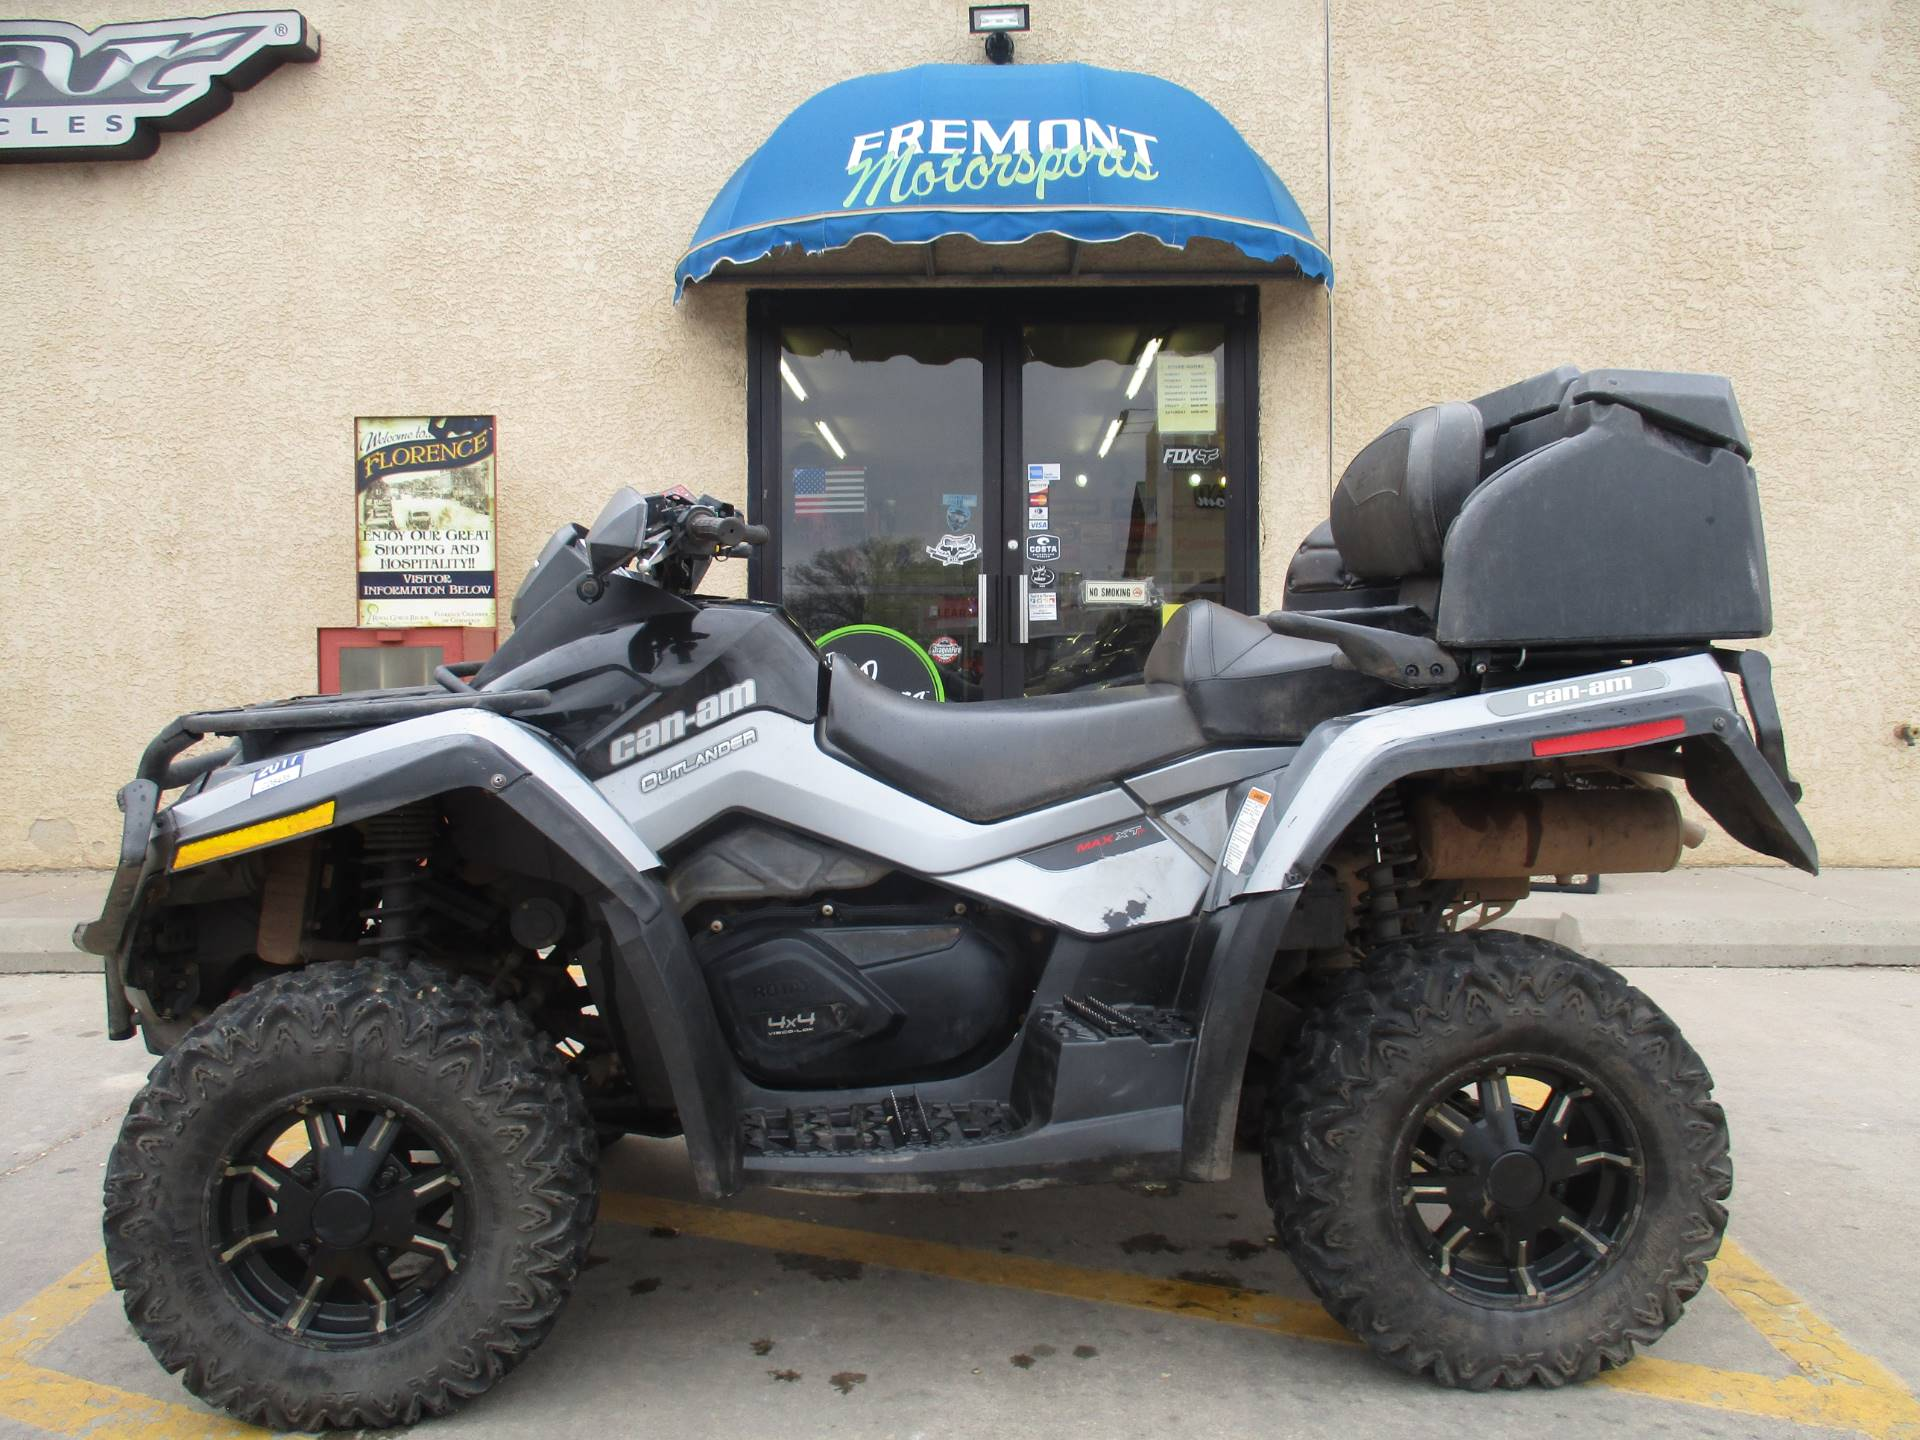 2011 Can-Am Outlander™ 800R XT-P in Florence, Colorado